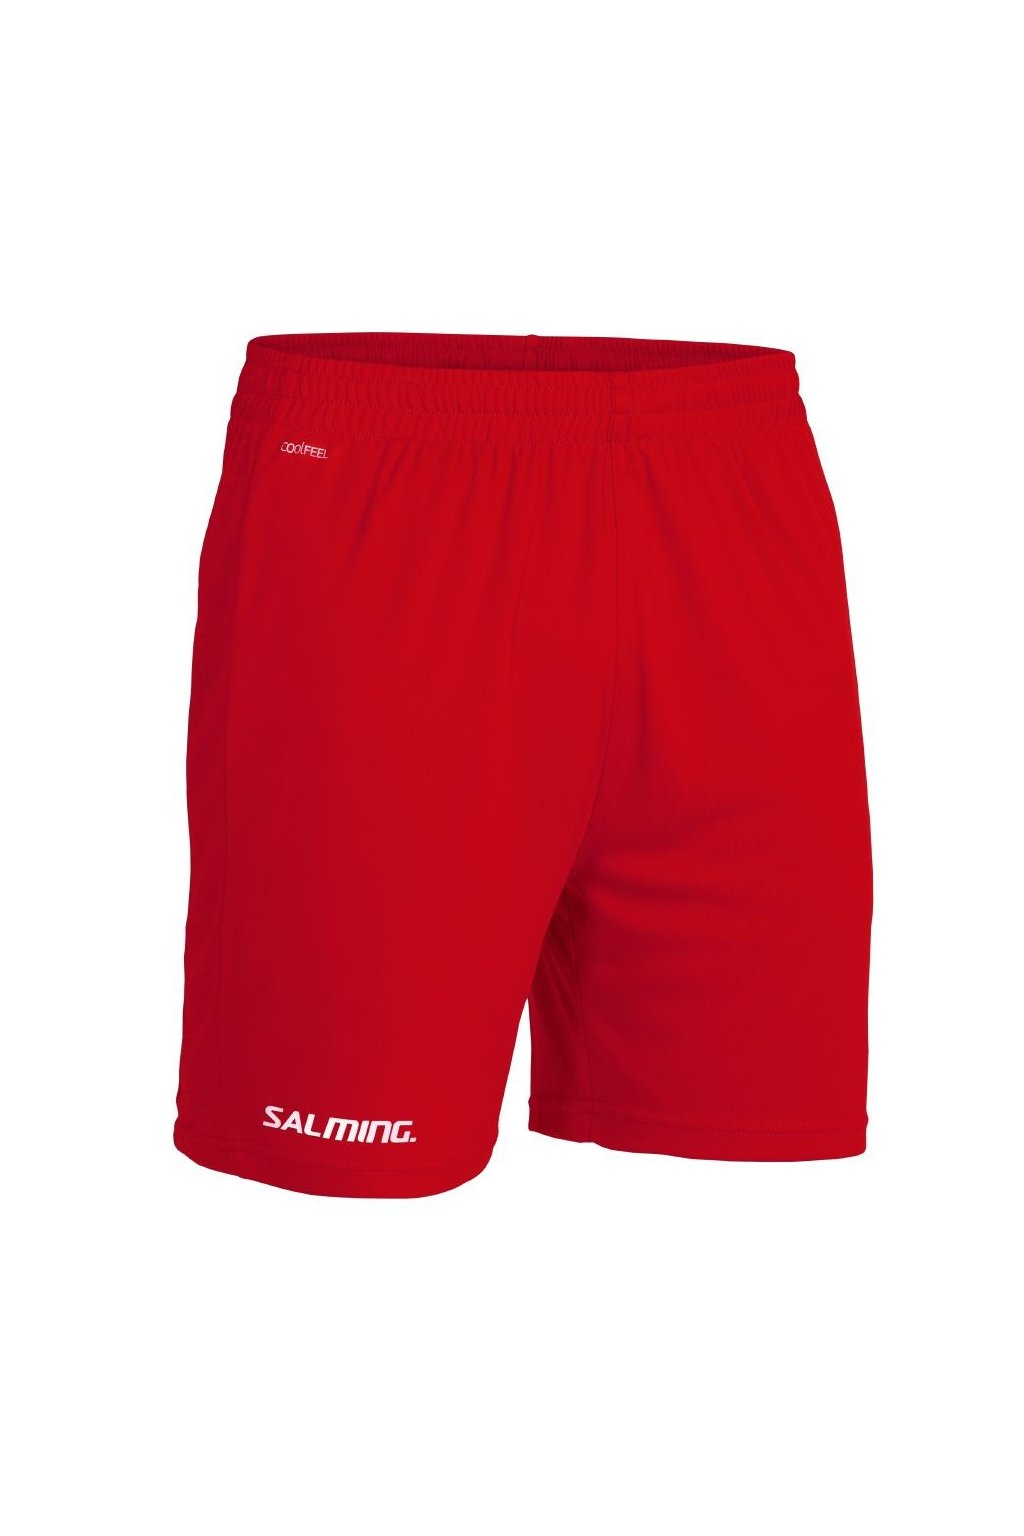 salming granite game shorts men (1)